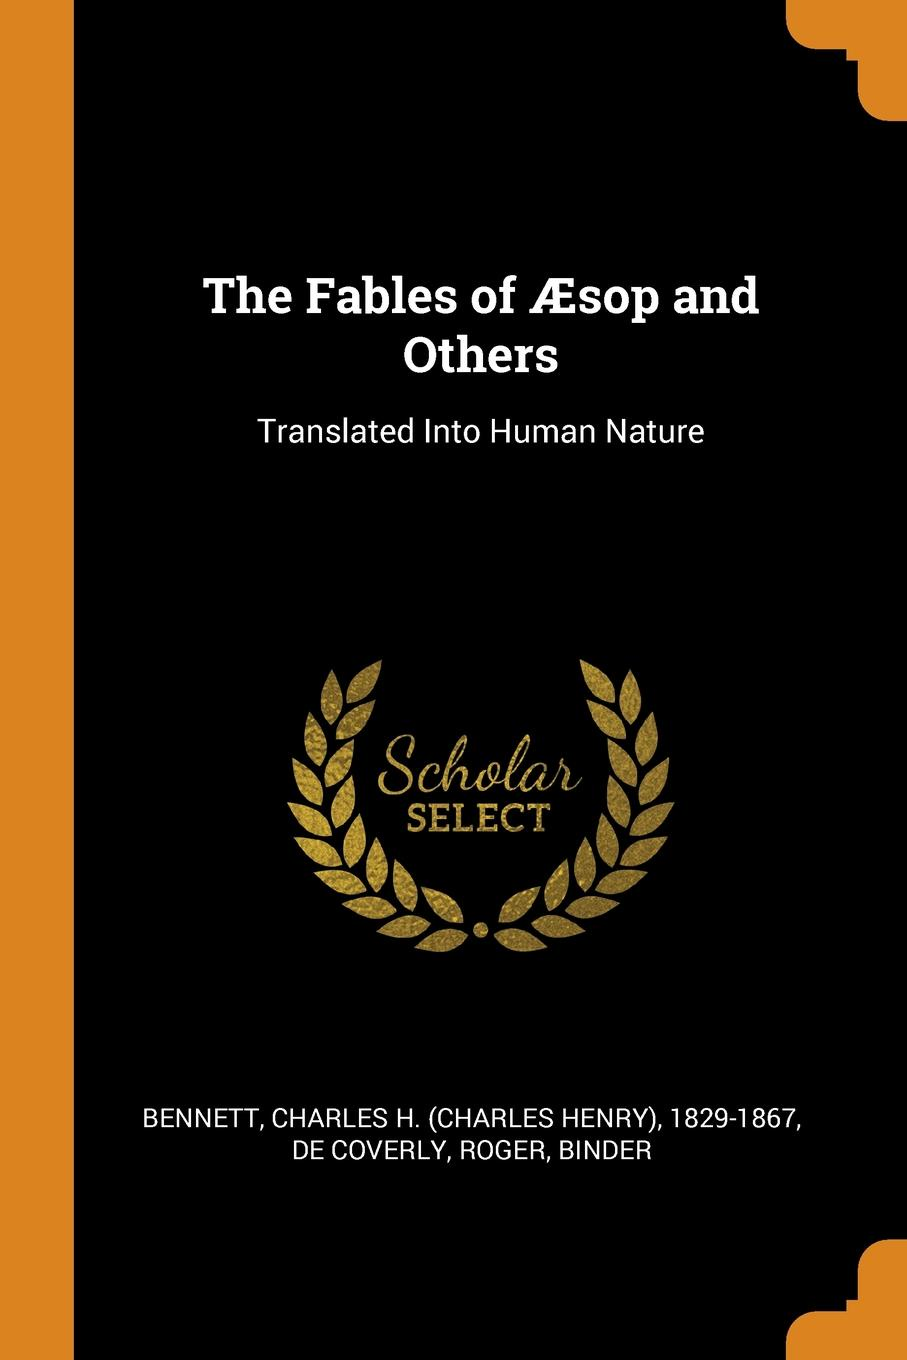 Charles H. 1829-1867 Bennett, Roger De Coverly The Fables of AEsop and Others. Translated Into Human Nature